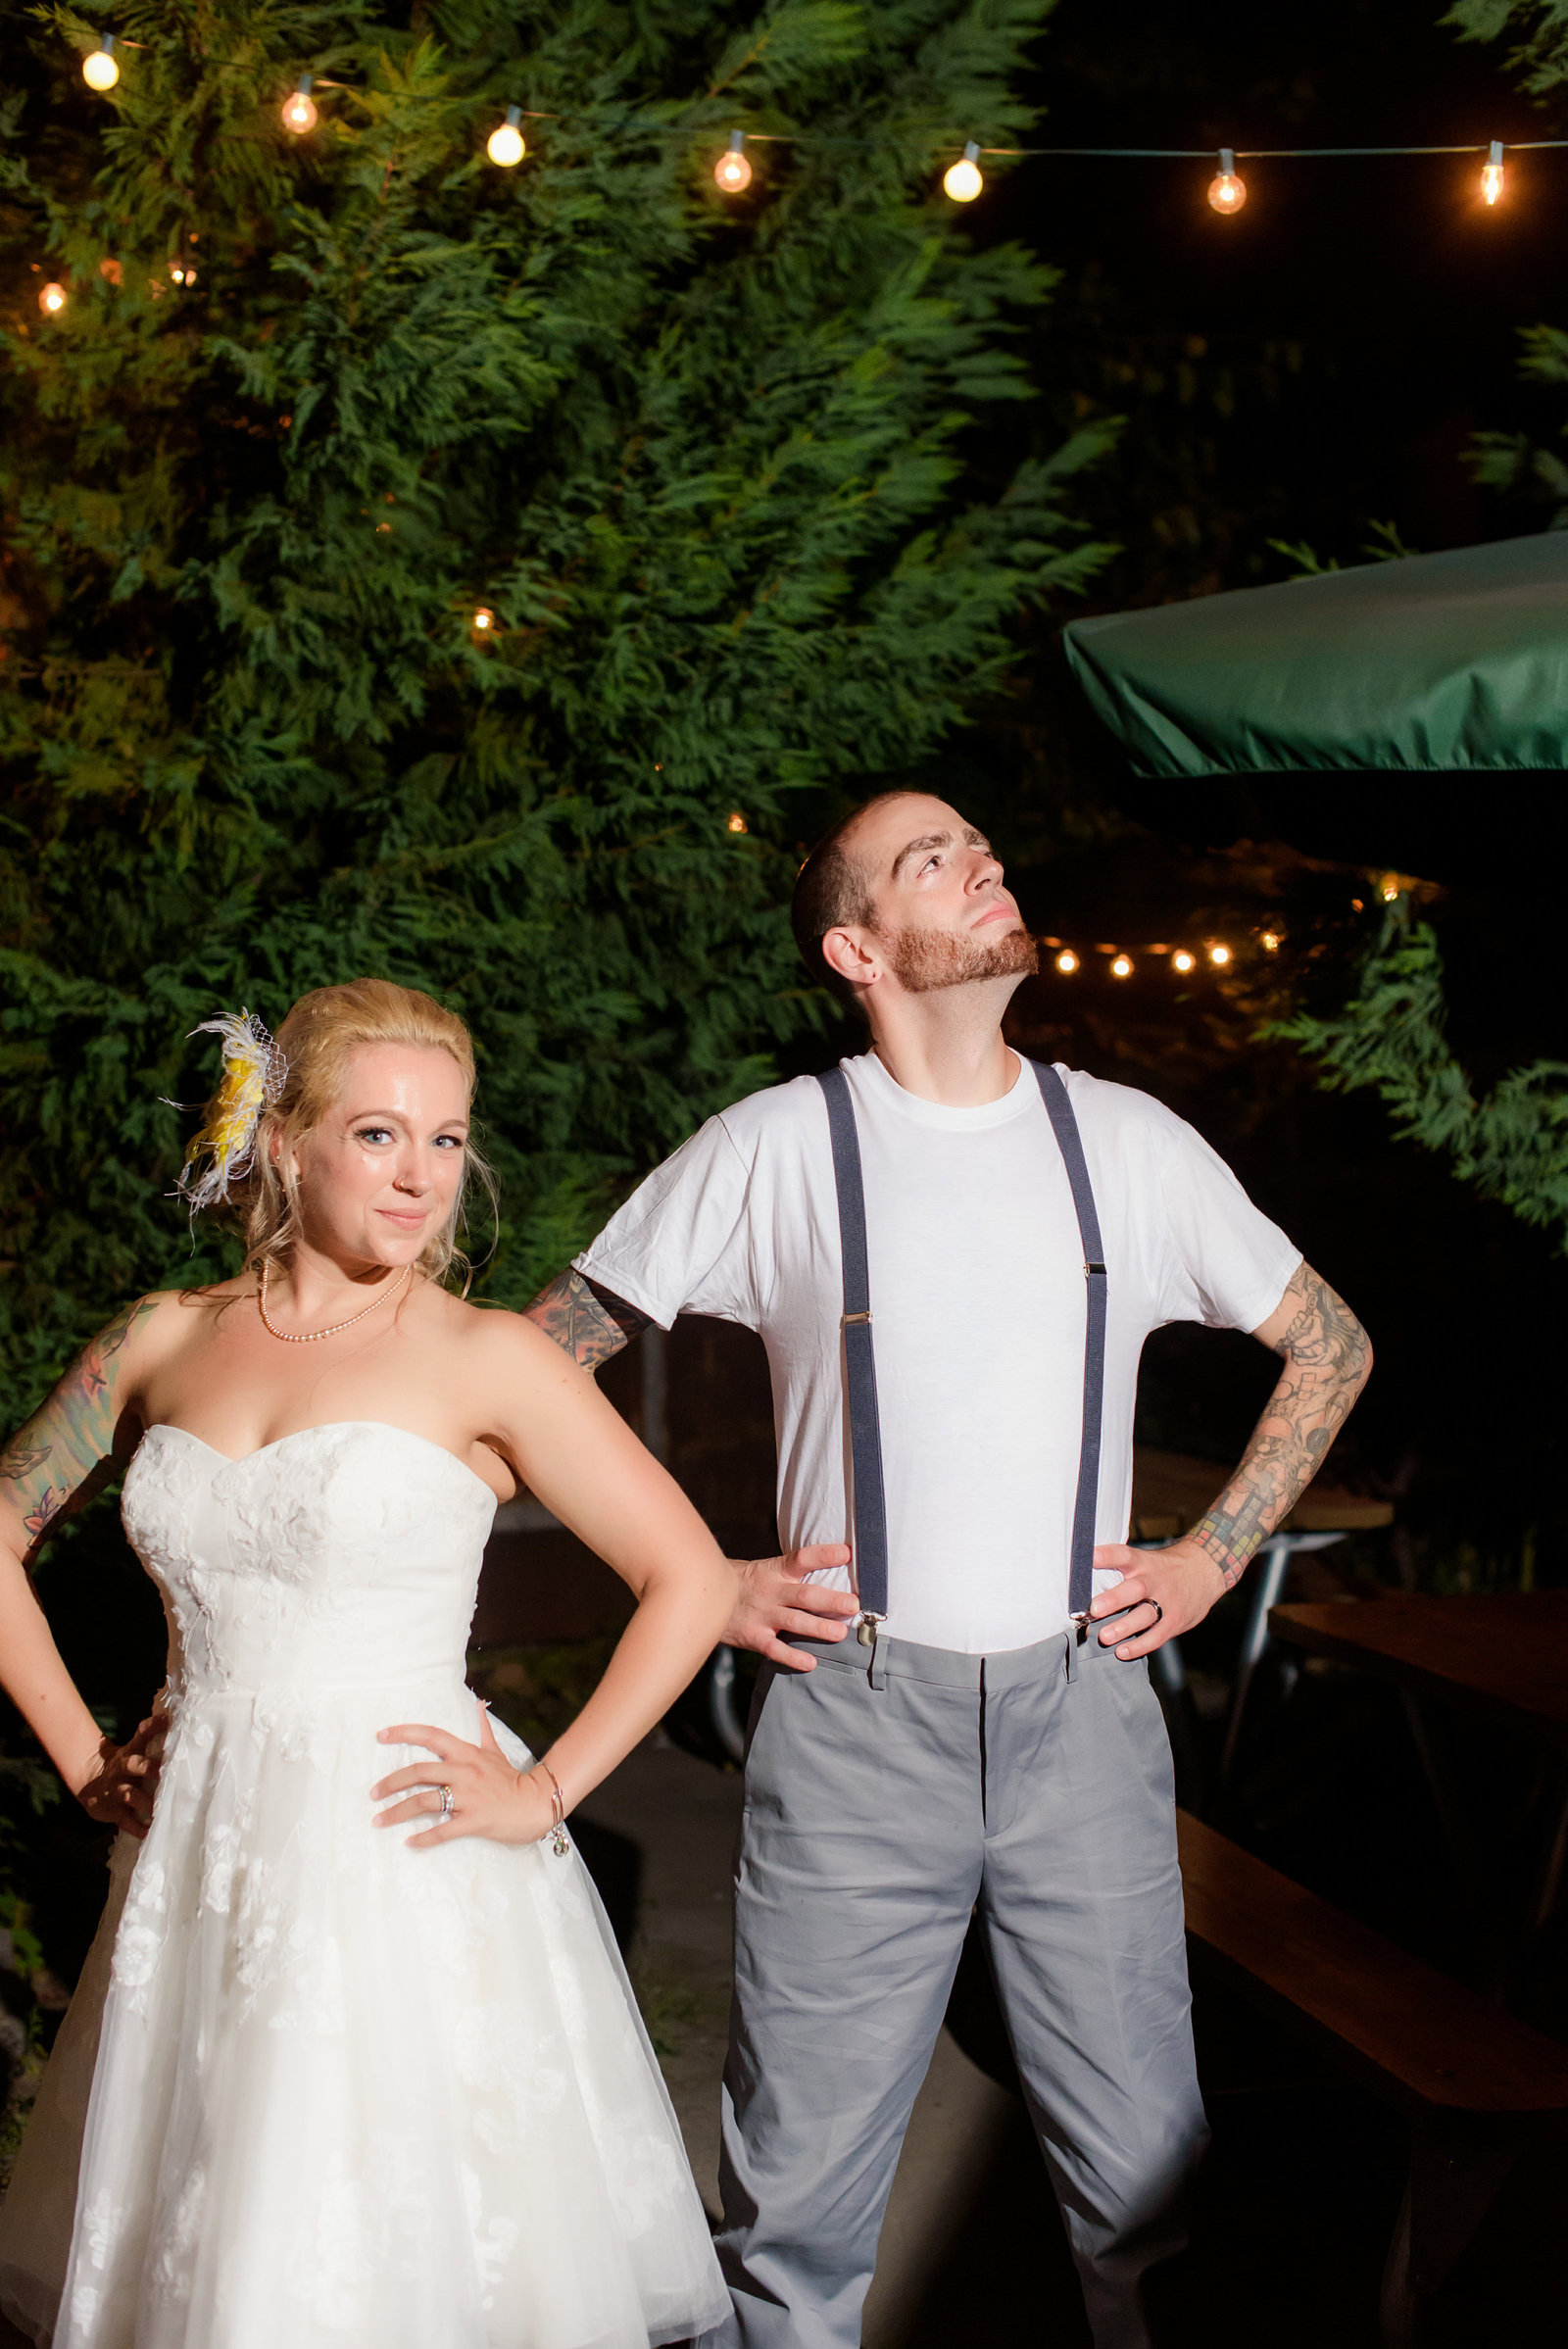 Sam&Zig_Whimsical_NJ_Wedding-166